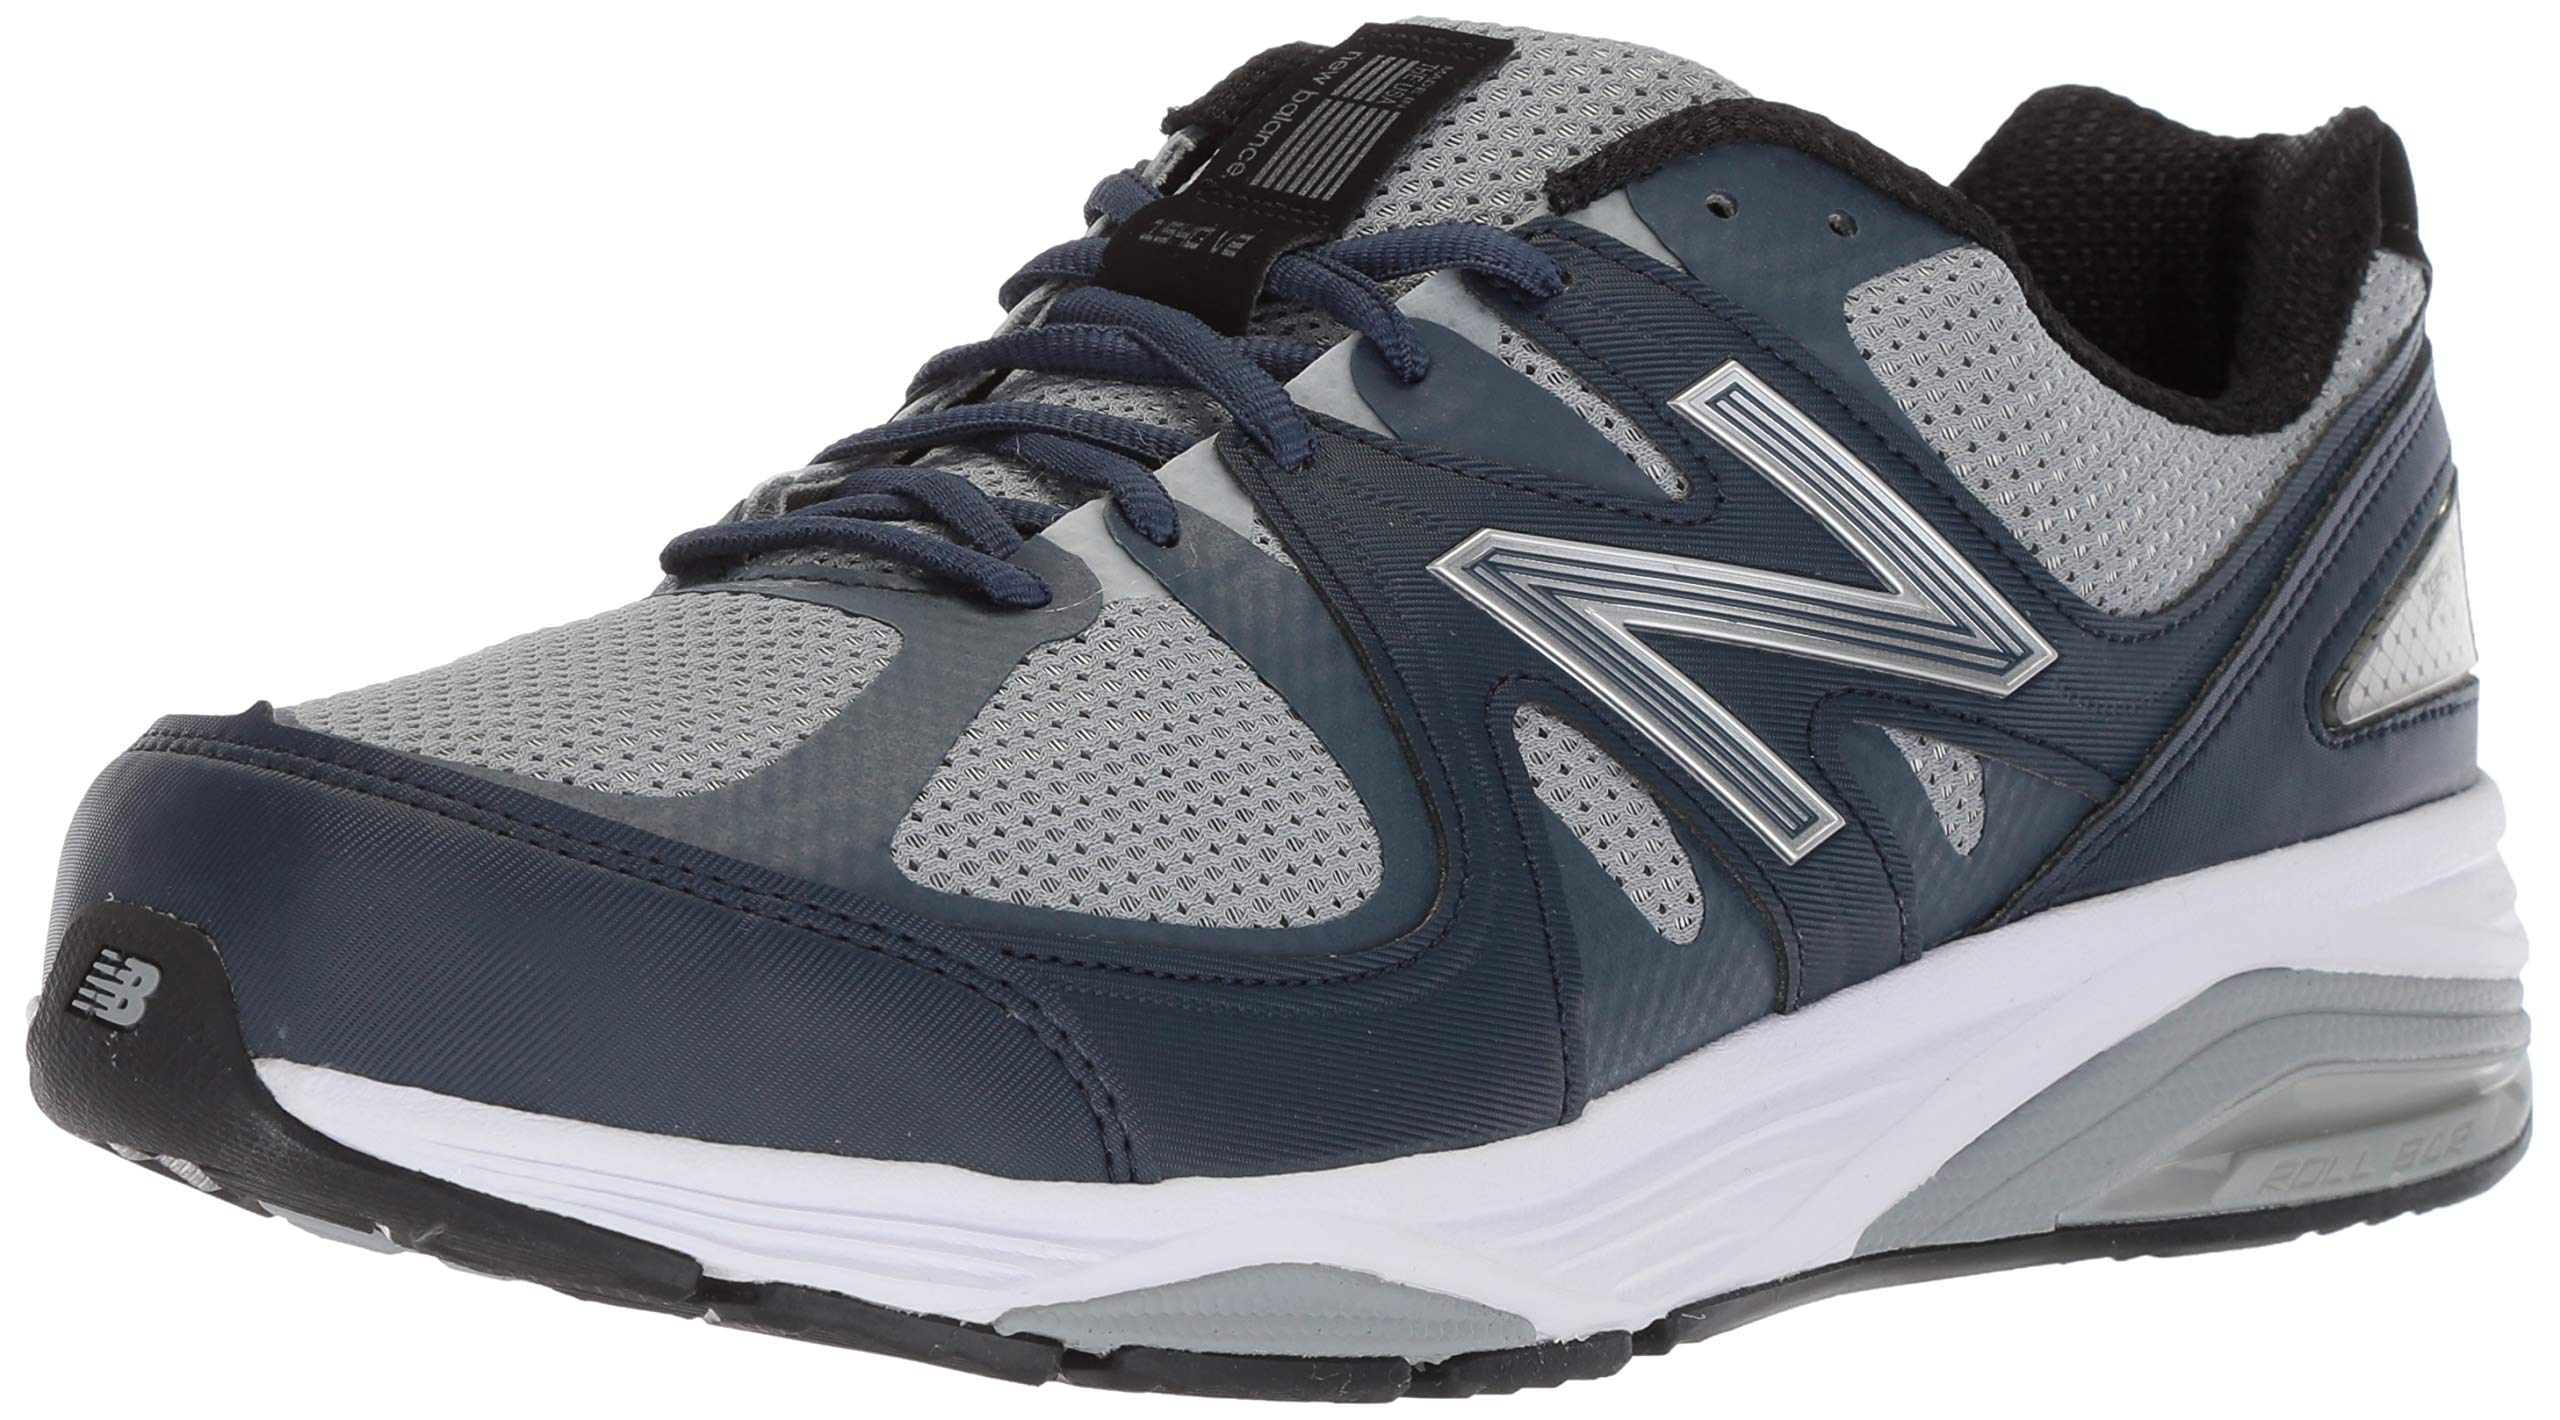 New Balance Men's M1540V2 Running Shoe, Grey/Navy, 11.5 6E US